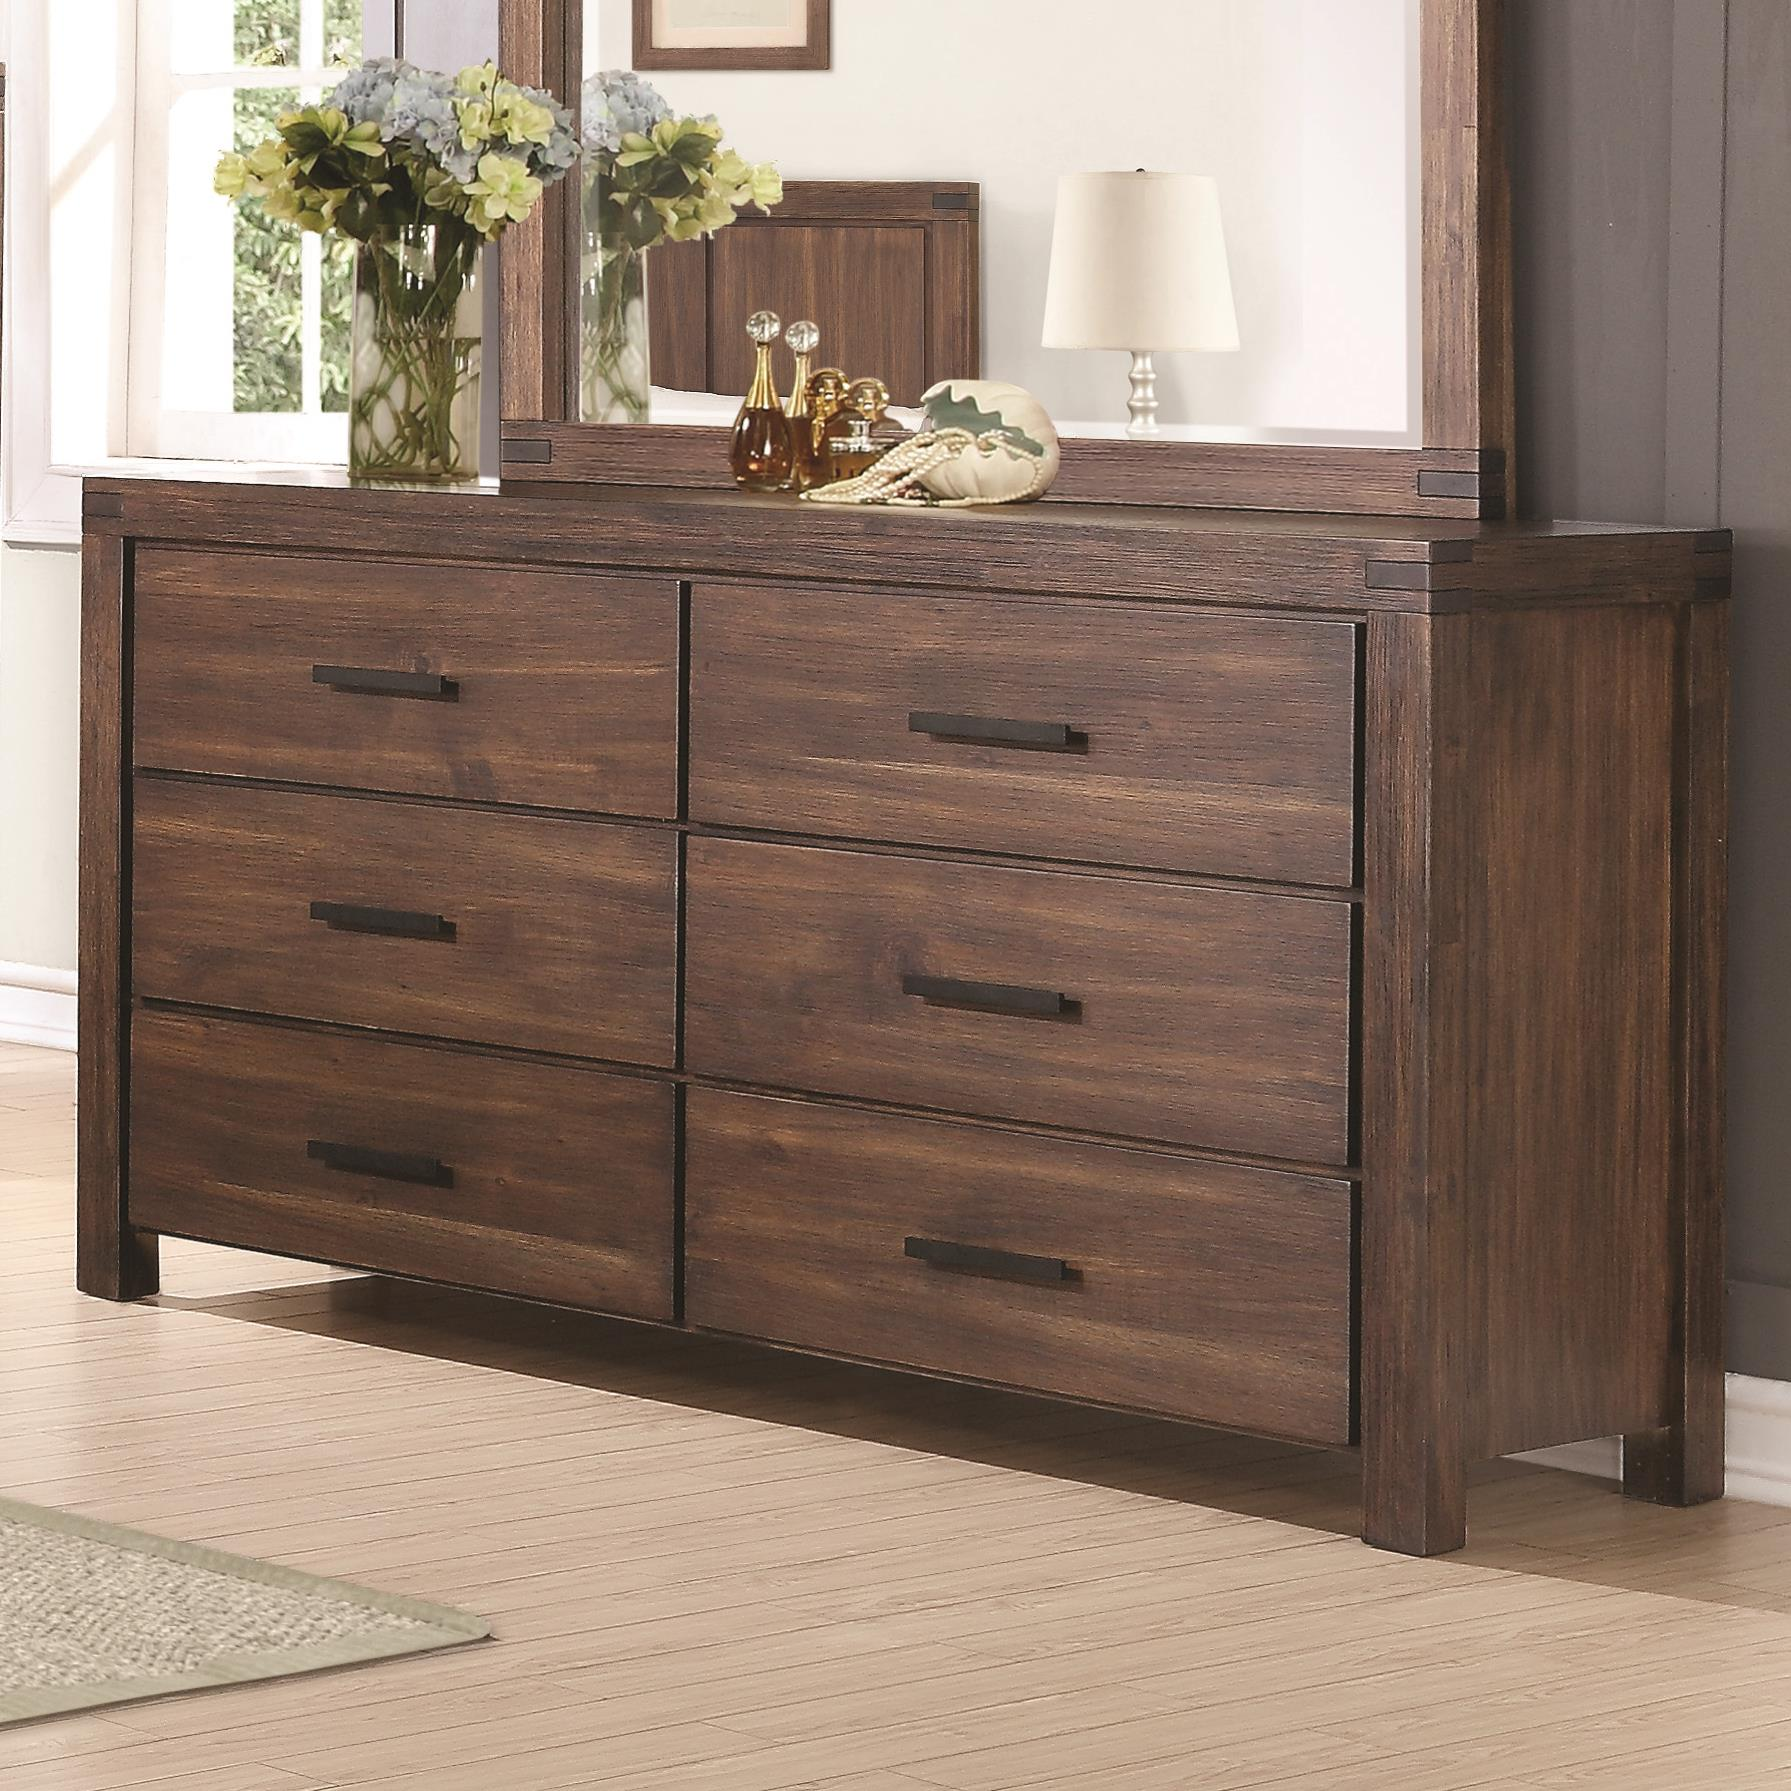 Six Drawer Dresser with Felt Lined Top Drawers and Removable